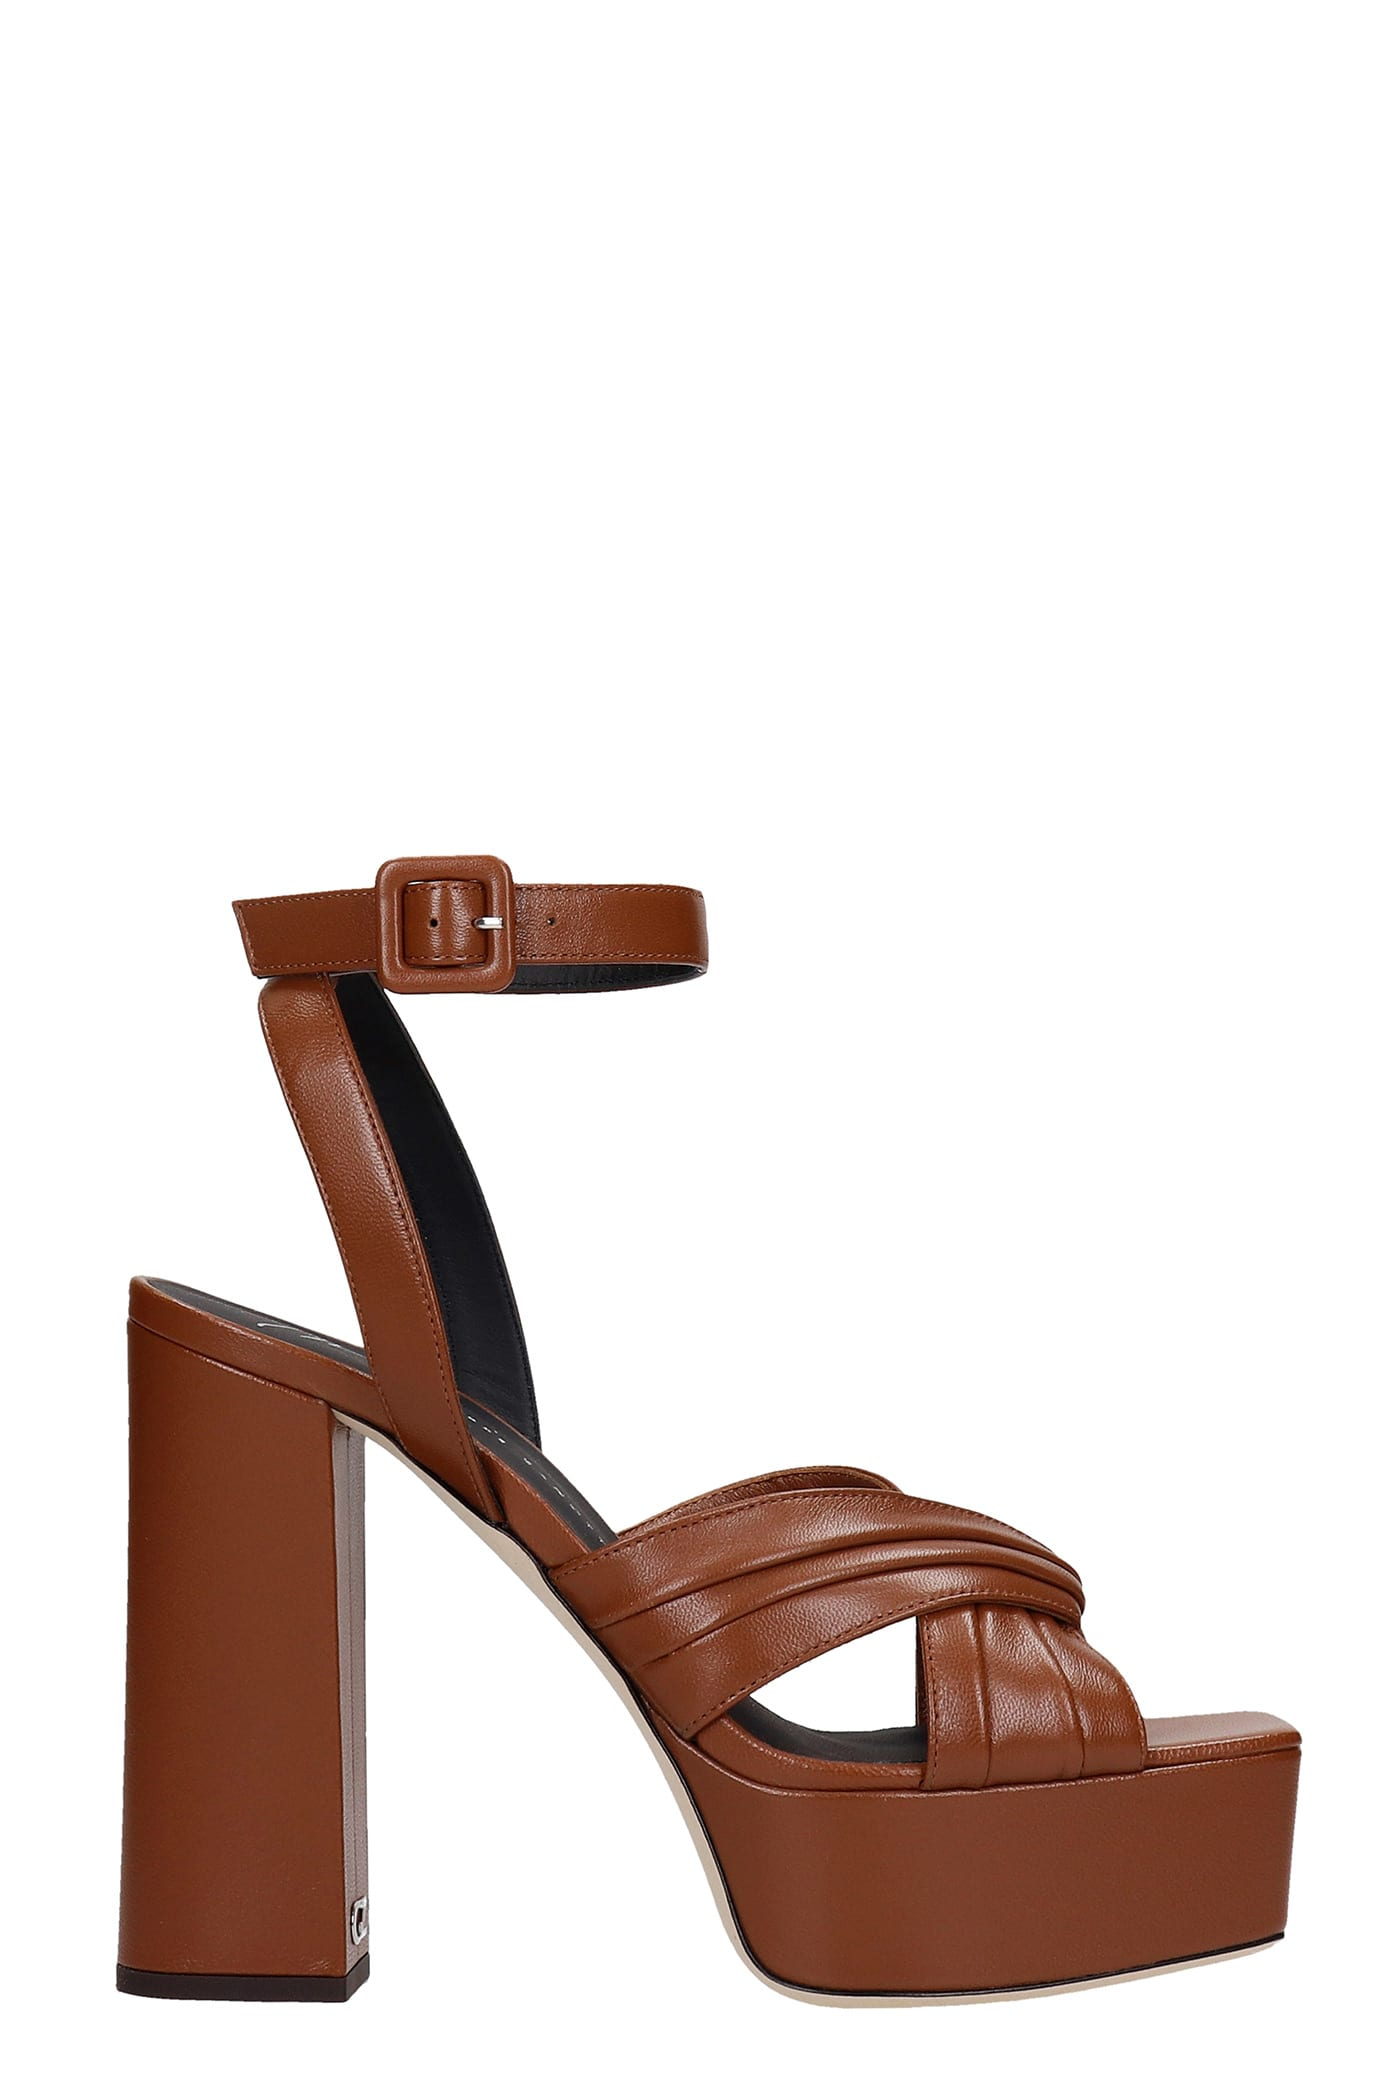 Giuseppe Zanotti Sinuosa Sandals In Brown Leather